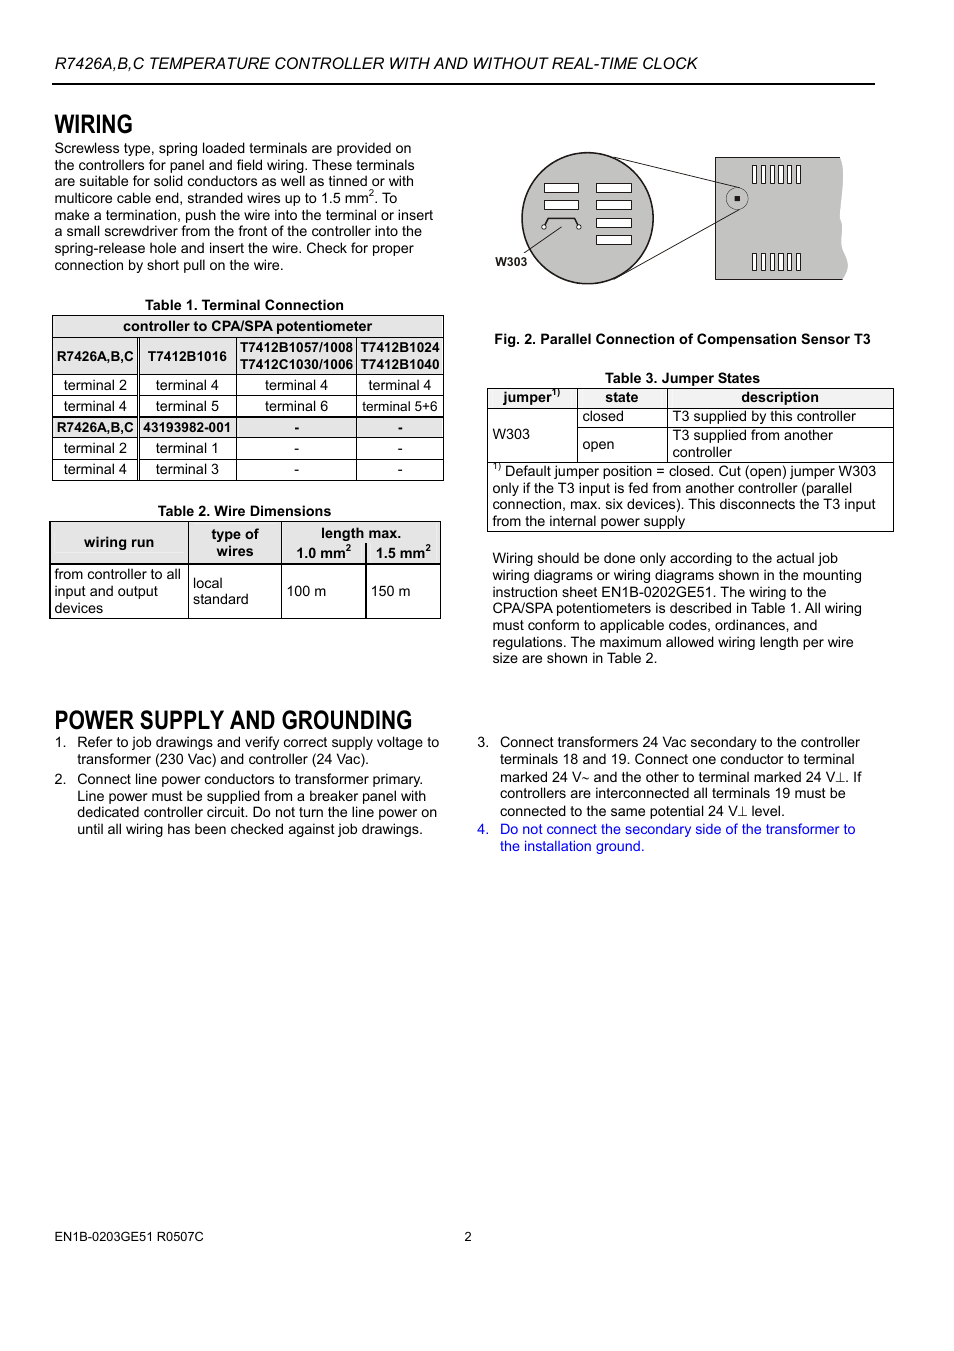 24 Volt Control Wiring Size Electrical Diagrams 12 To Diagram 4 Prong Power Supply And Grounding Honeywell Micronik 200 R7426a